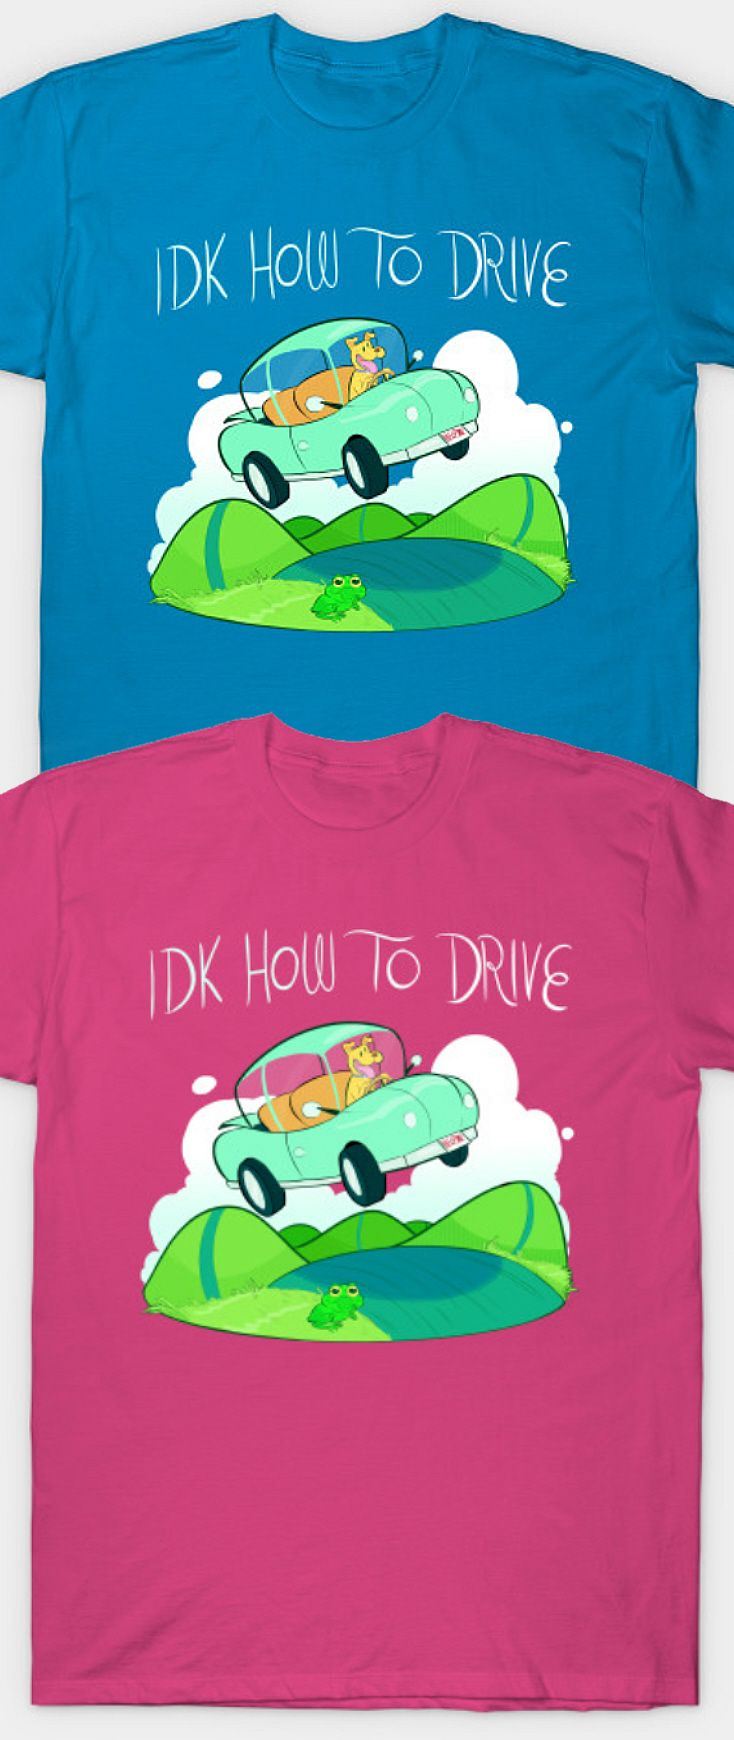 Funny Driving Shirt - IDK (I don't know) How to Drive. Hilarious gag gift to tease a bad driver or a teen who hasn't learned how to drive yet. Teen driving humor, funny drivers test humor quotes. Casual work outfit ideas, first day of school outfit ideas for teens, teen girl  or boy Christmas or birthday party gift ideas, casual school or work outfits, drivers license test tips. Affiliate Link.